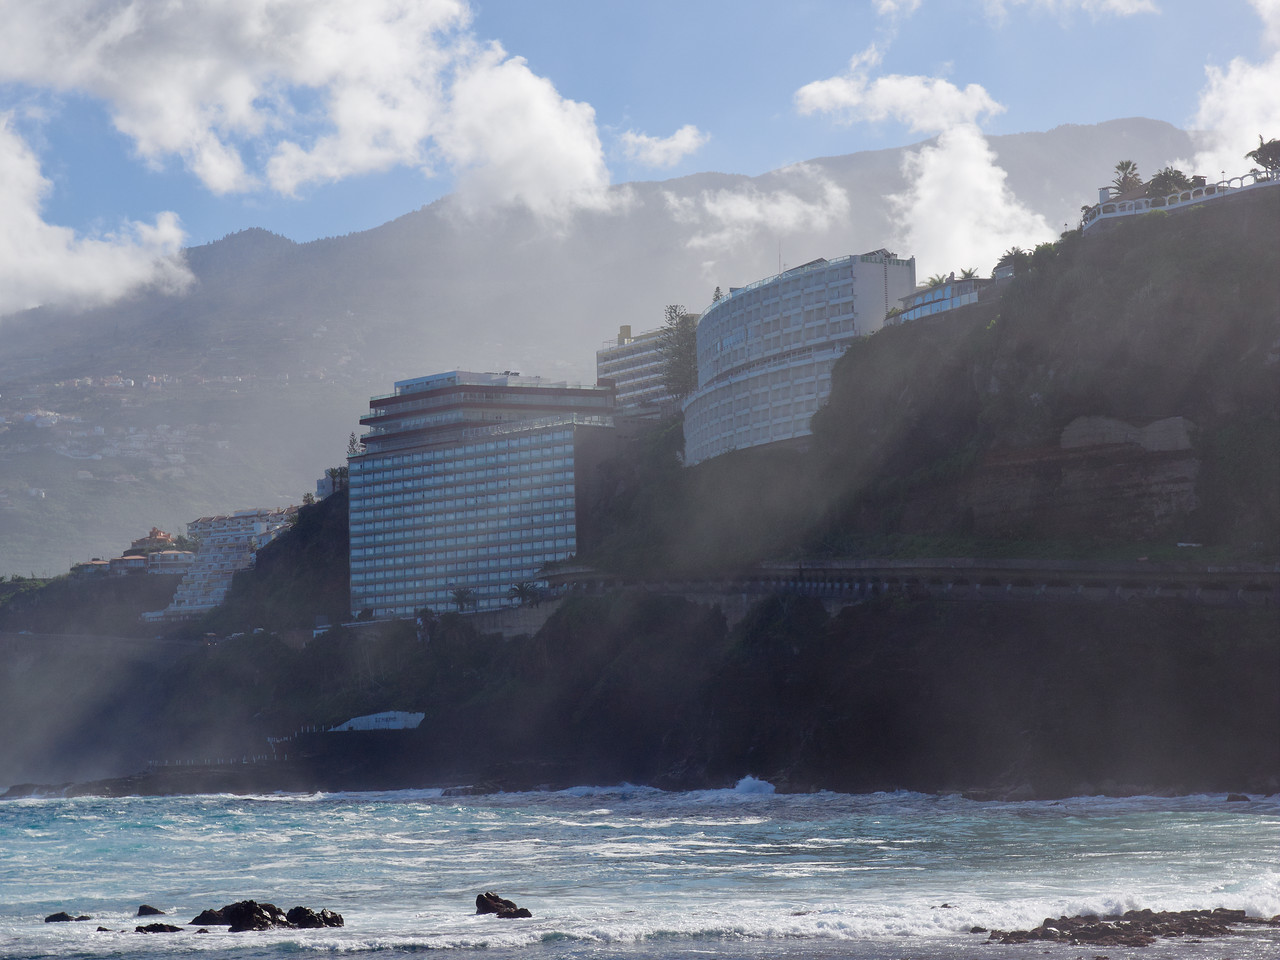 Hotels at Puerto de la Cruz